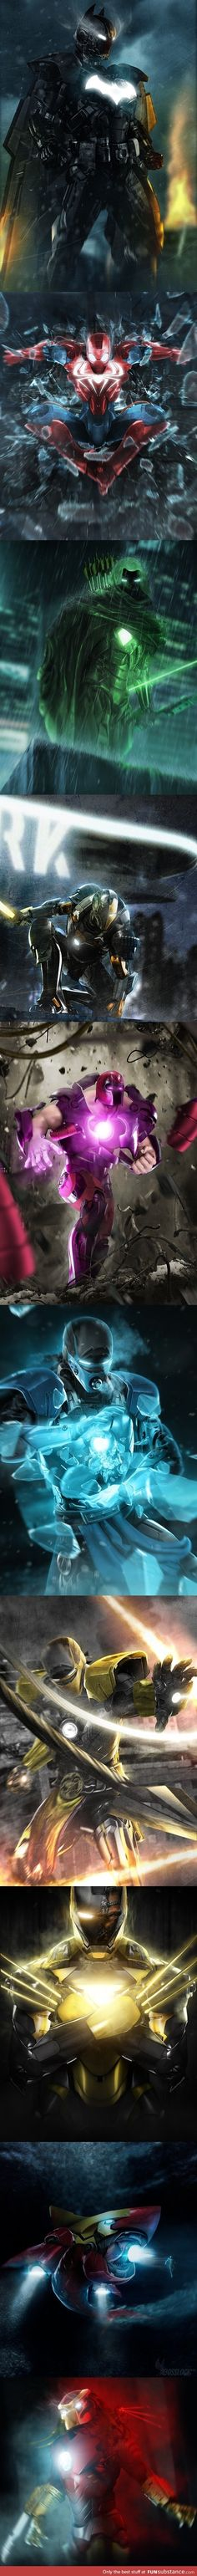 Iron man mashups